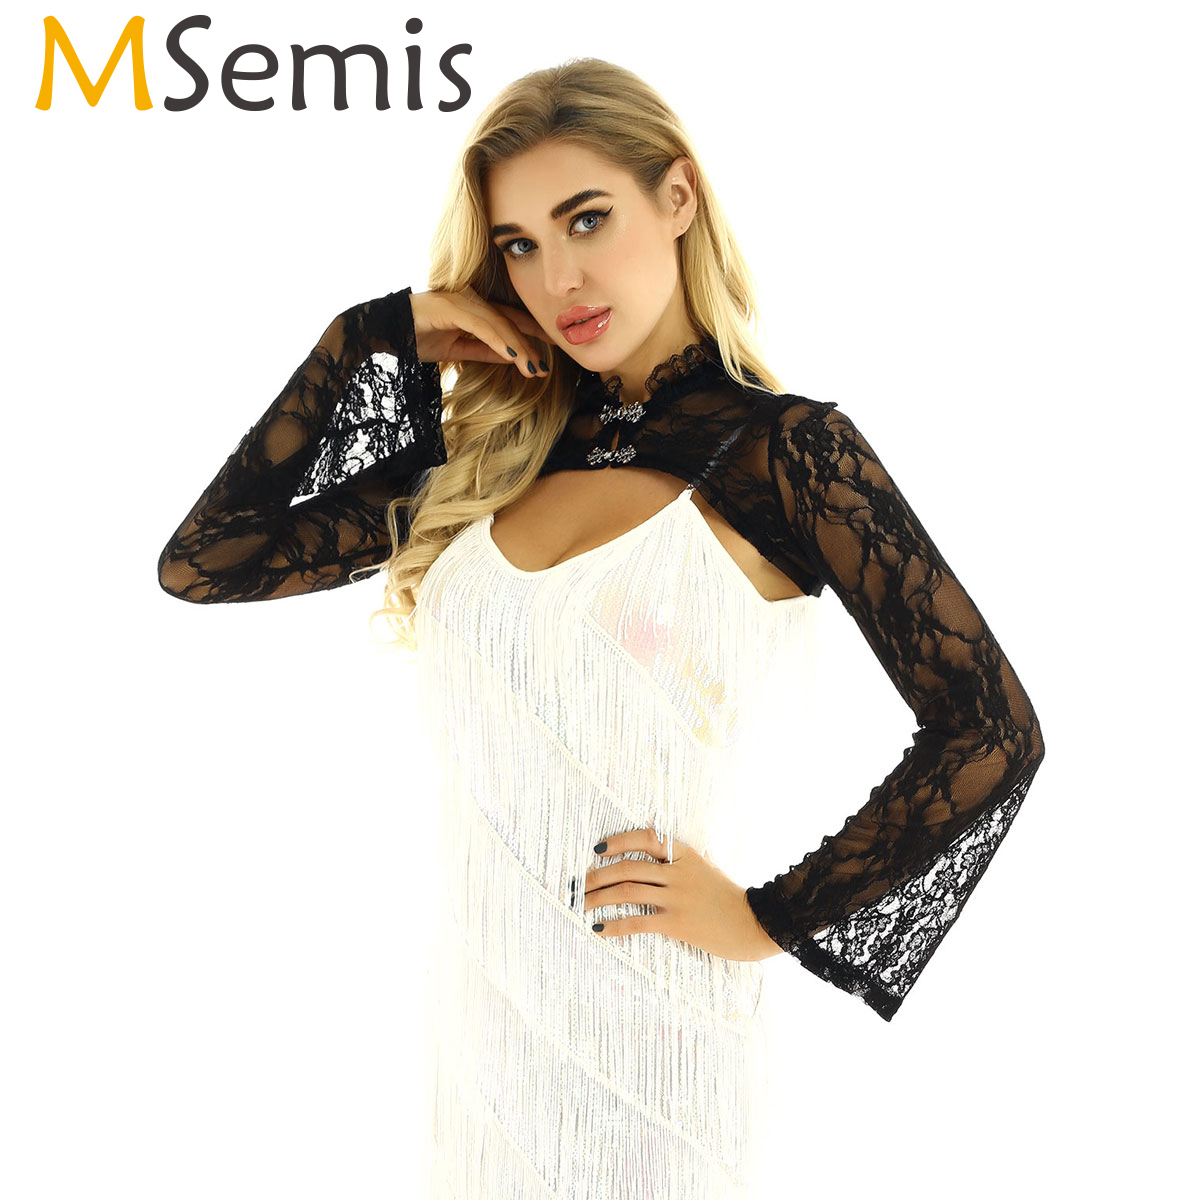 MSemis Women Arms Sleeves Vintage Stand Collar Raglan Long Flared Sleeves See Through Sheer Lace Crop Top Form Fitting Shrugs